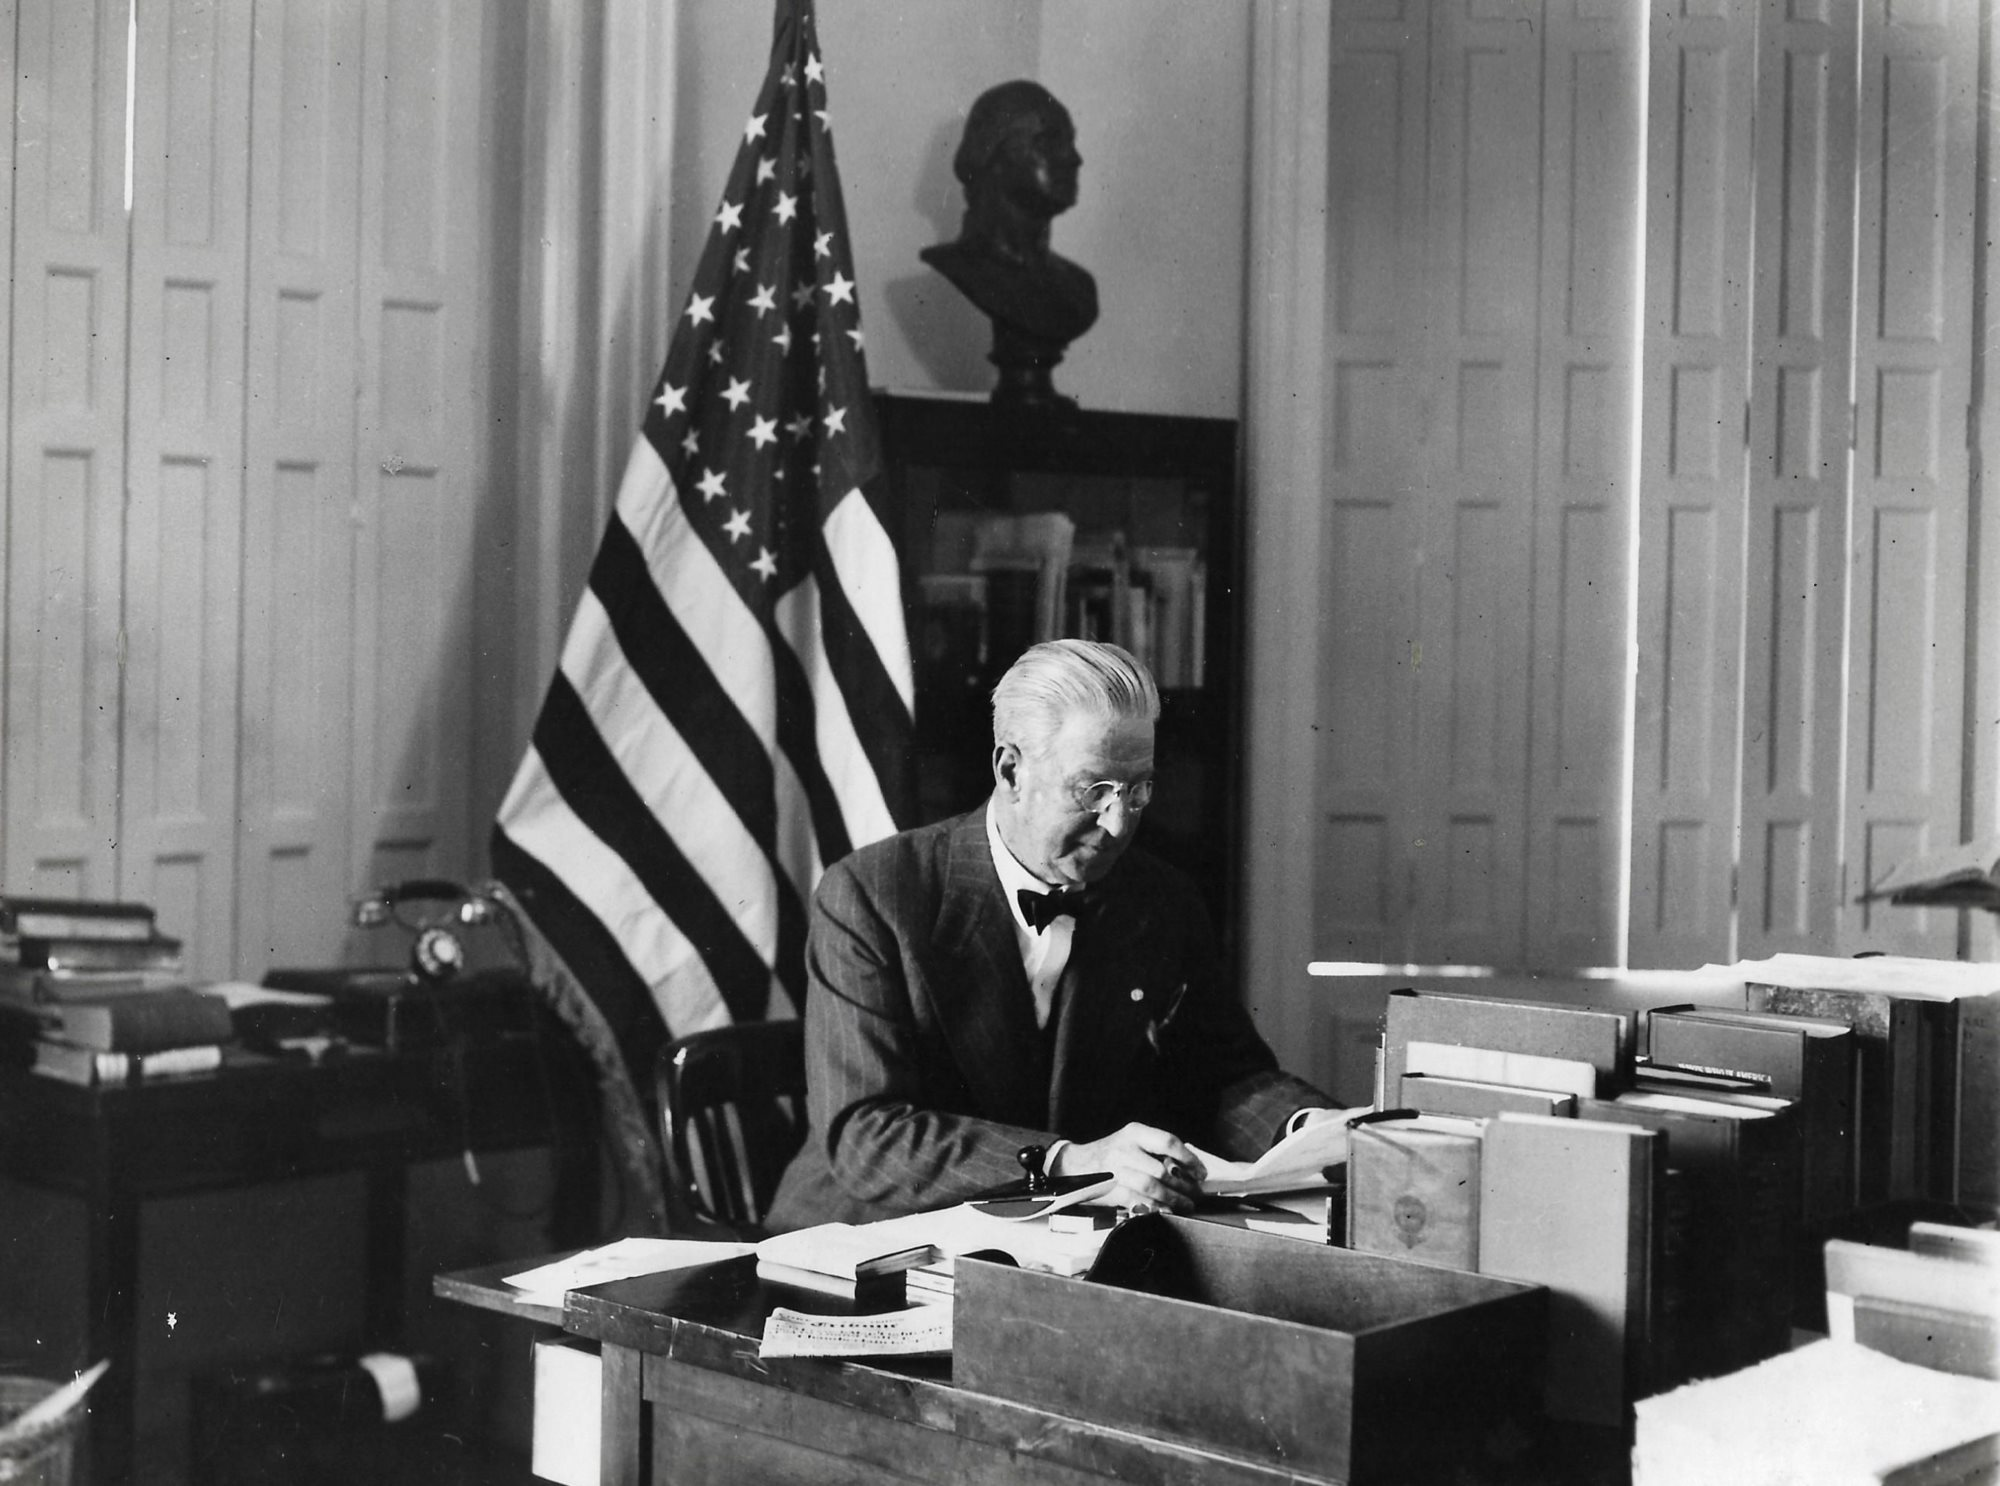 Ambassador Alexander Weddell at his desk in Madrid. Archival Photograph from the Personal Collection of Alexander and Virginia Weddell, courtesy of the Virginia House Museum.